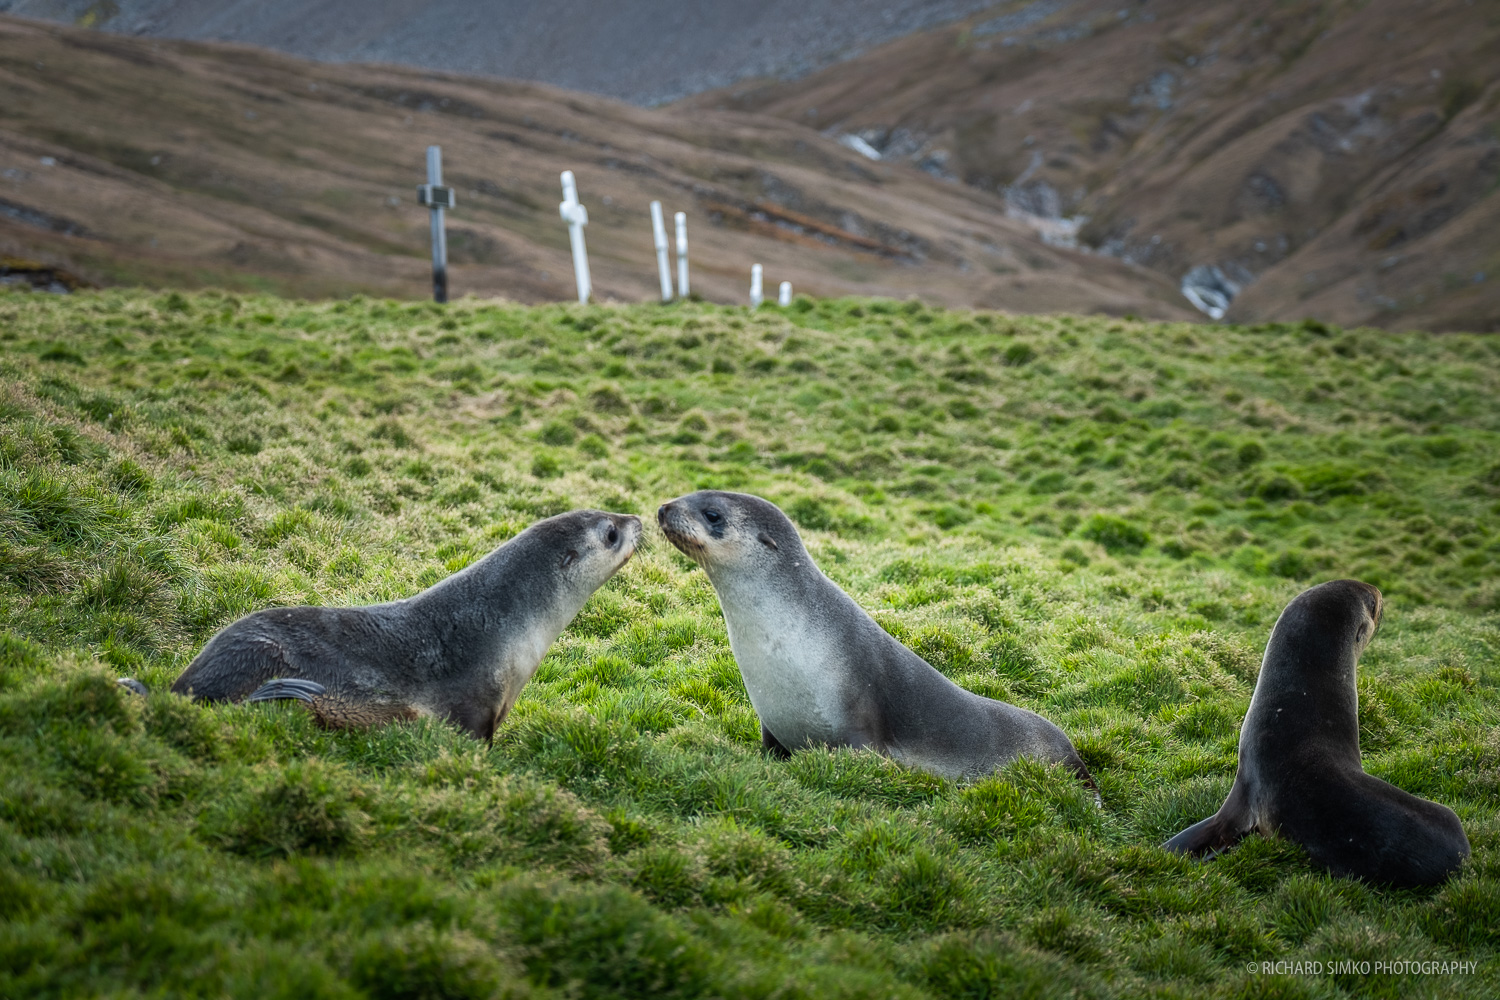 Fur seal pups are playing in the grass in front of graves of deceased whalers.